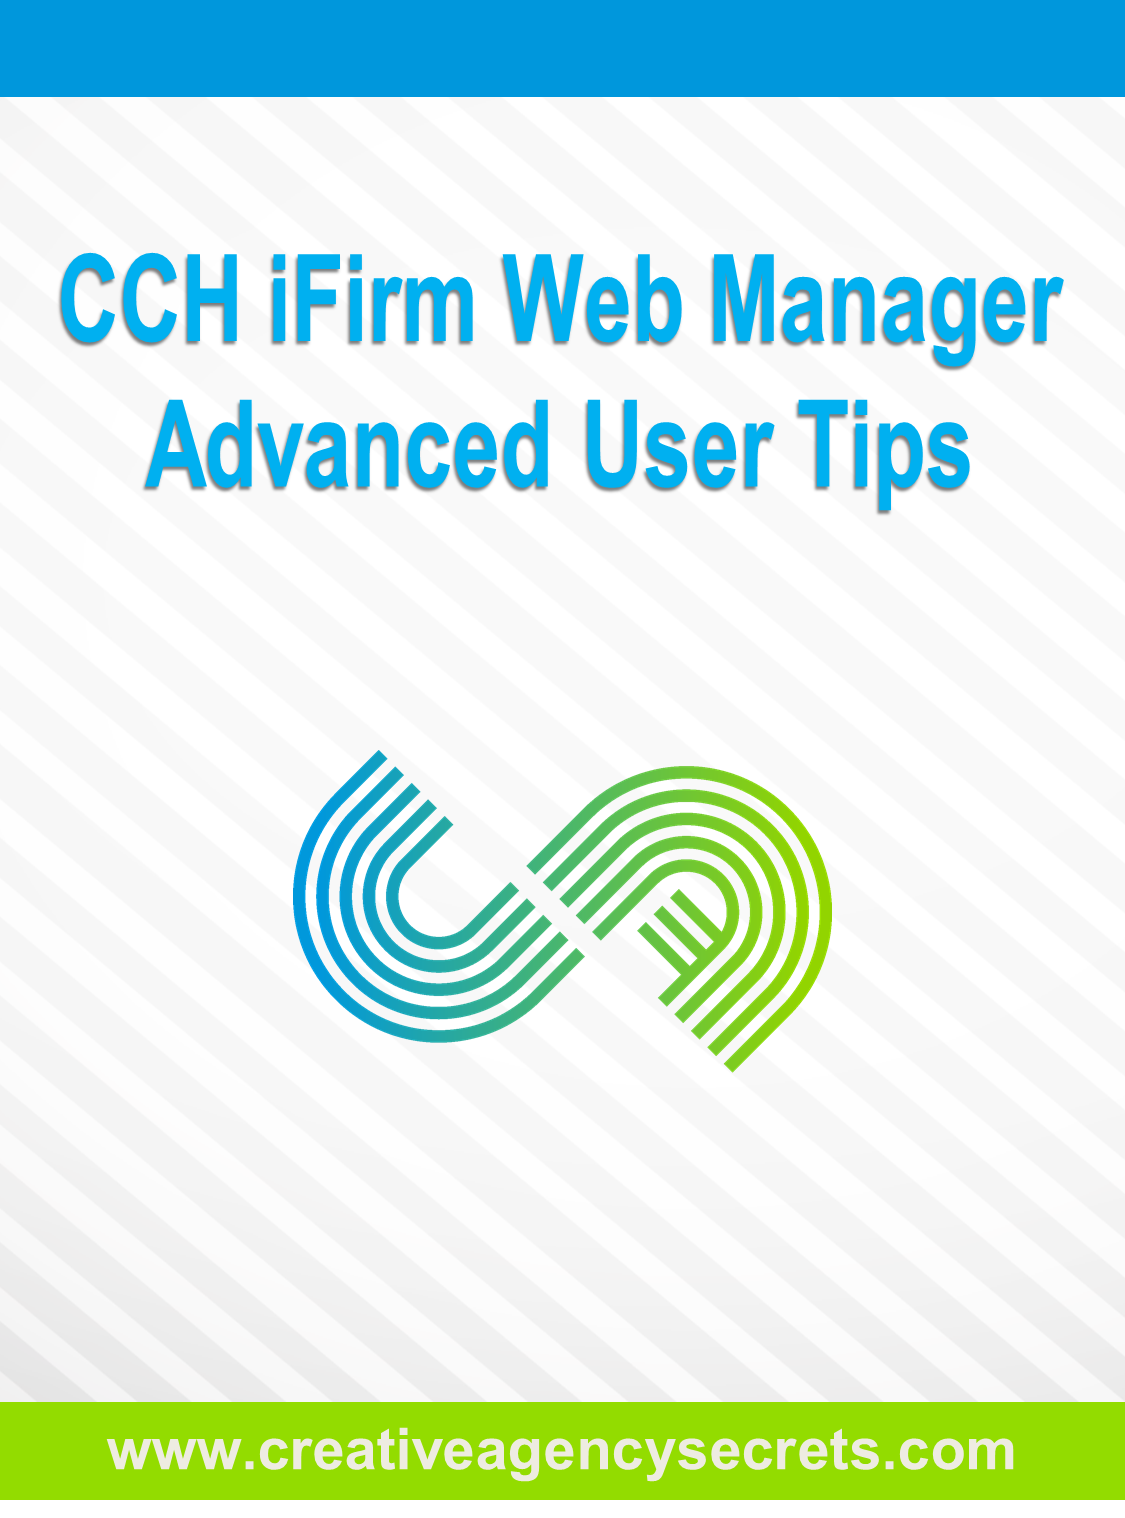 CCH iFirm Web Manager Advanced User Tips Cover